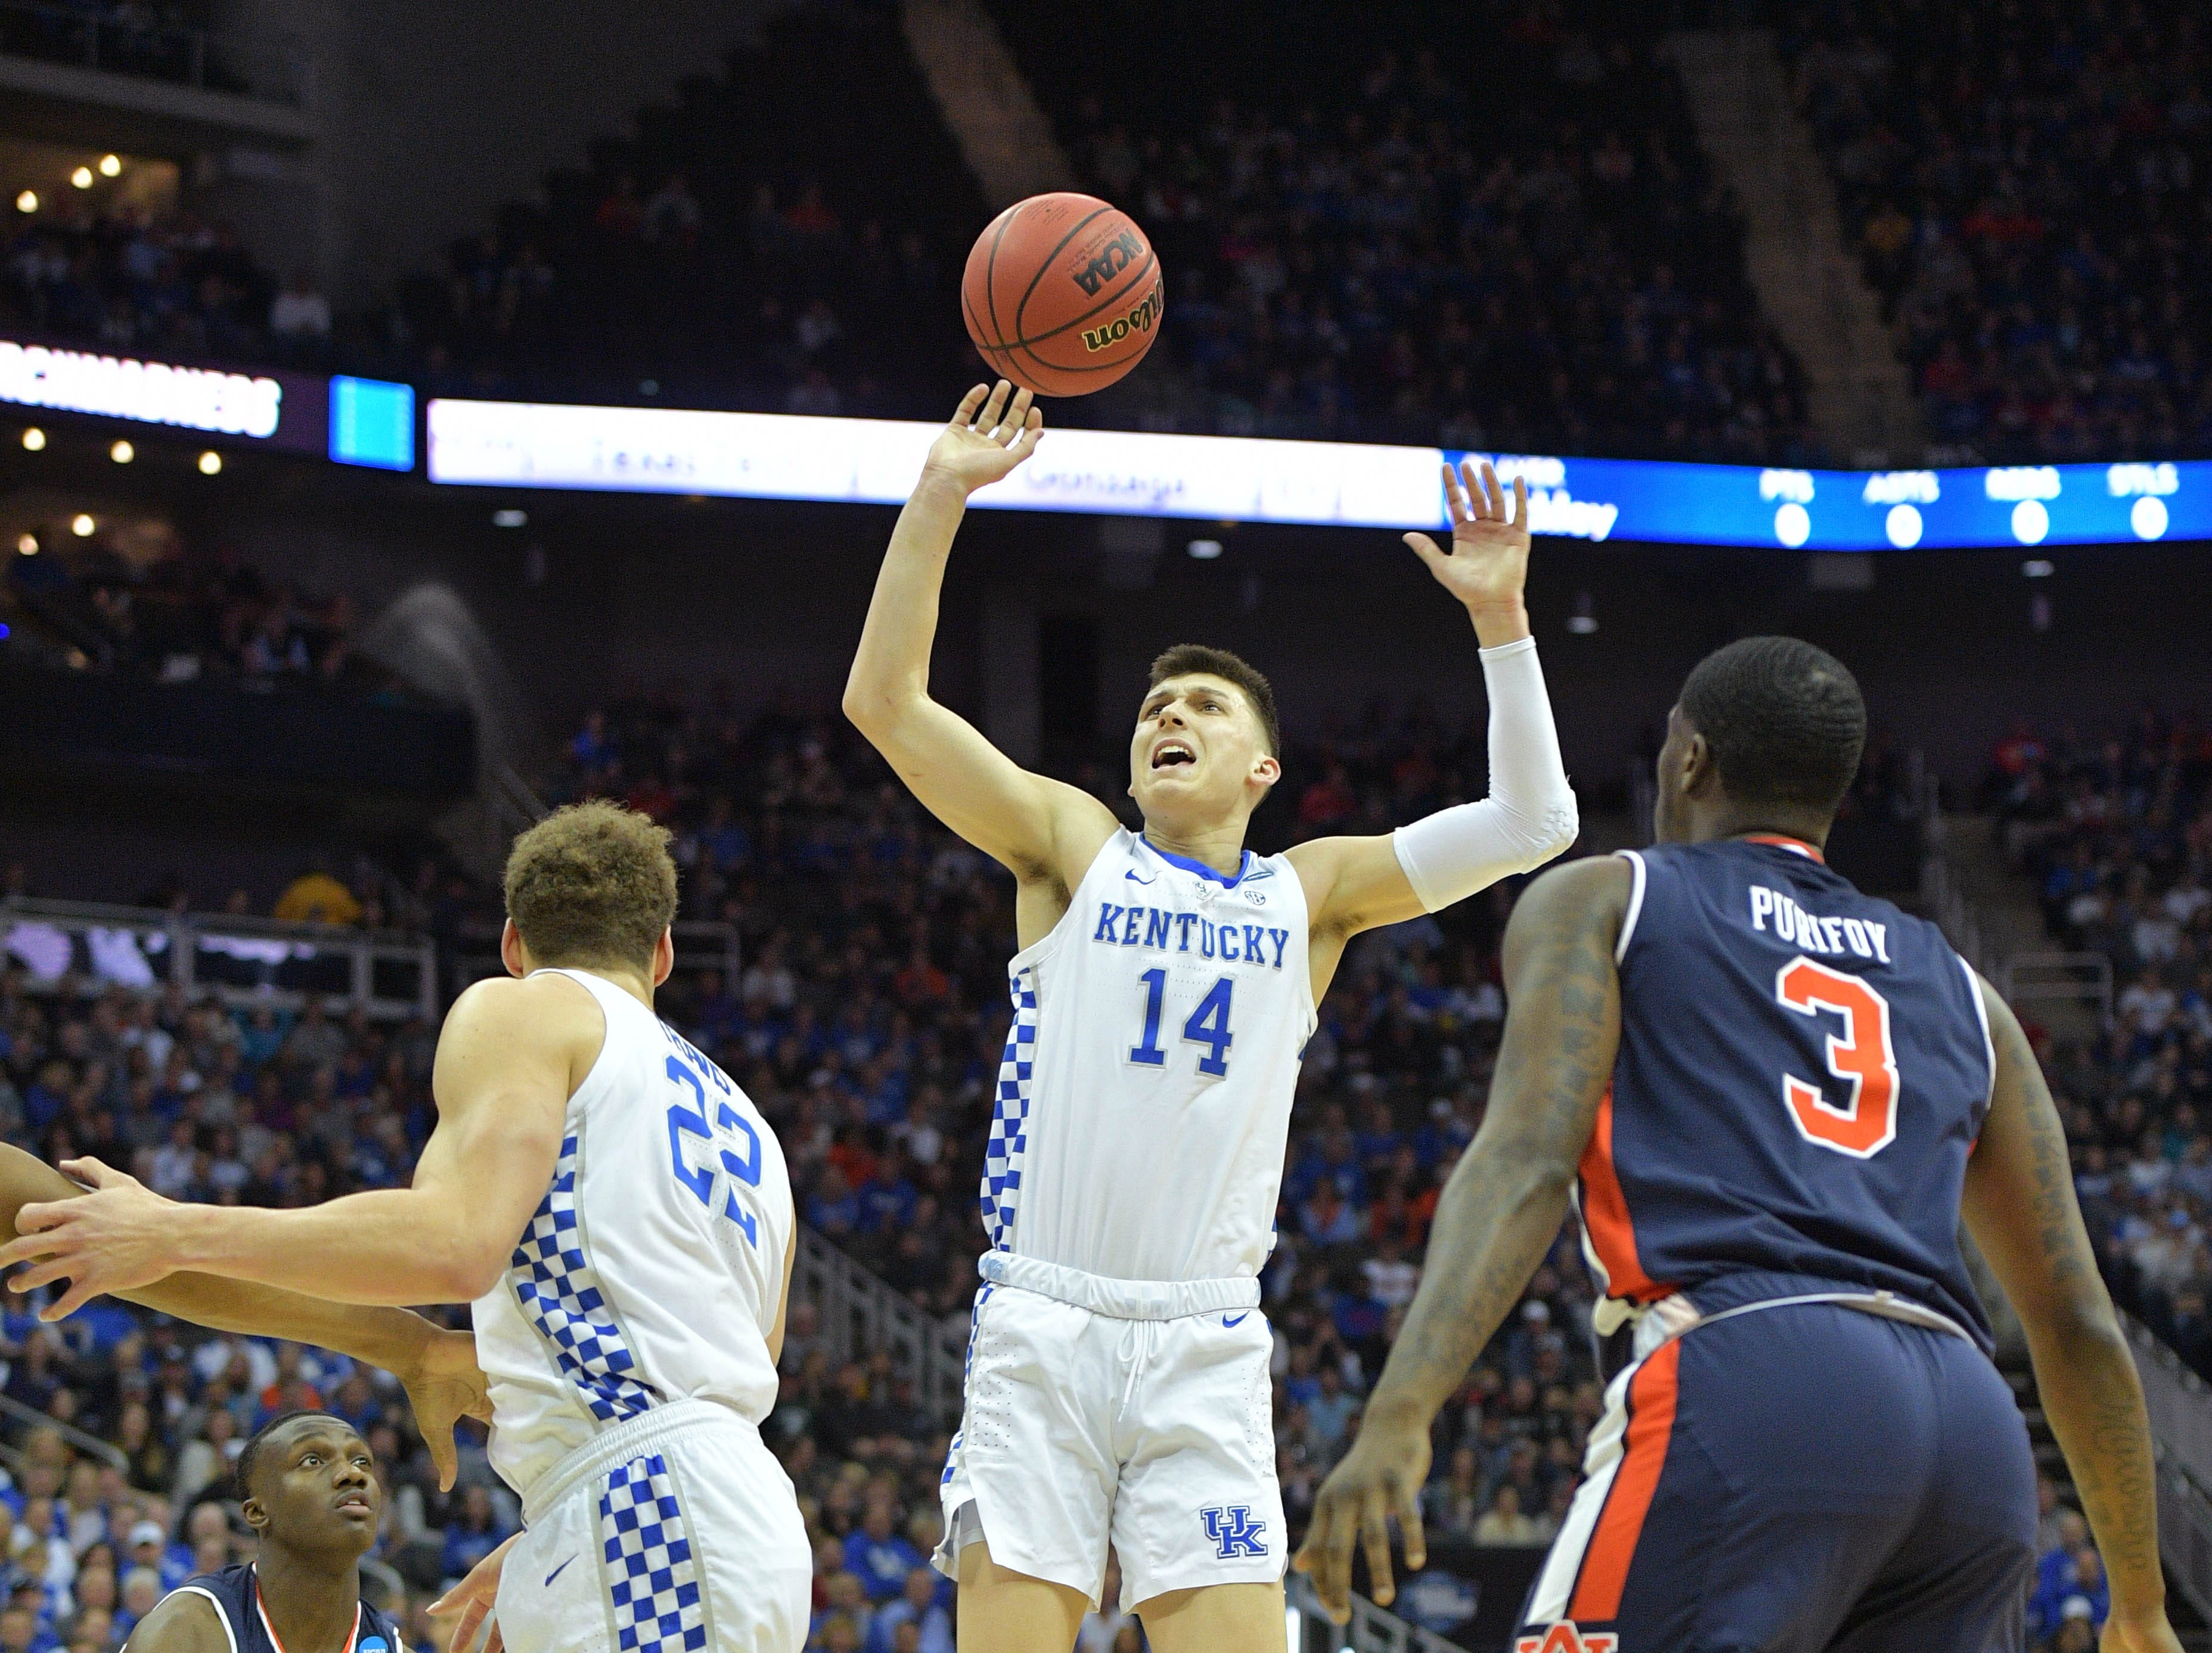 Mar 31, 2019; Kansas City, MO, United States; Kentucky Wildcats guard Tyler Herro (14) loses his handle on the ball against the Auburn Tigers during the first half in the championship game of the midwest regional of the 2019 NCAA Tournament at Sprint Center. Mandatory Credit: Denny Medley-USA TODAY Sports